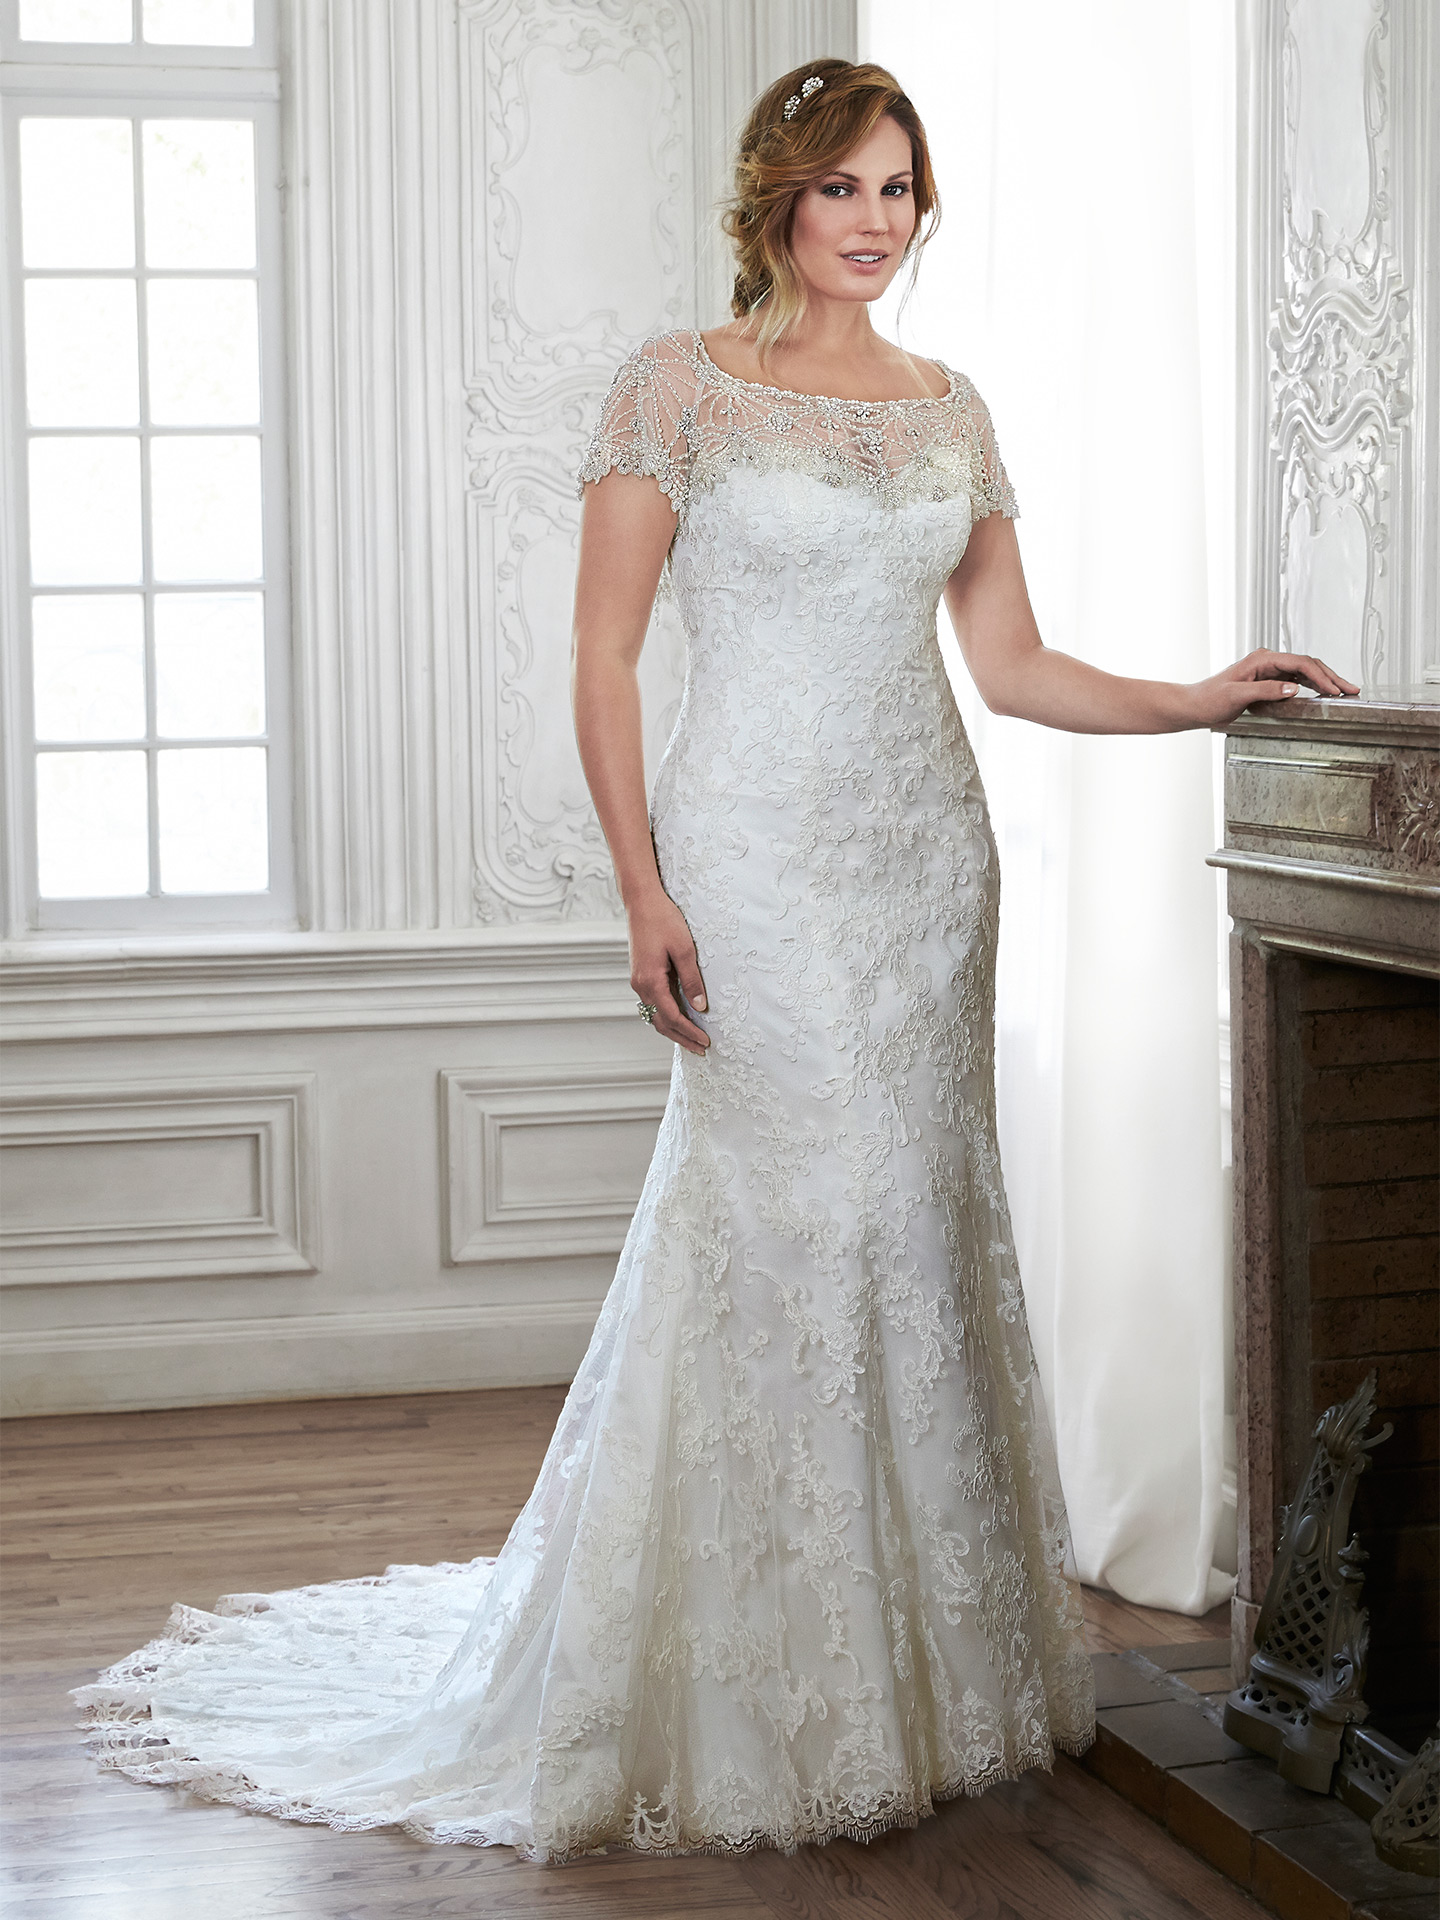 Flattering Wedding Dresses for Curvy Brides - Chesney by Maggie Sottero